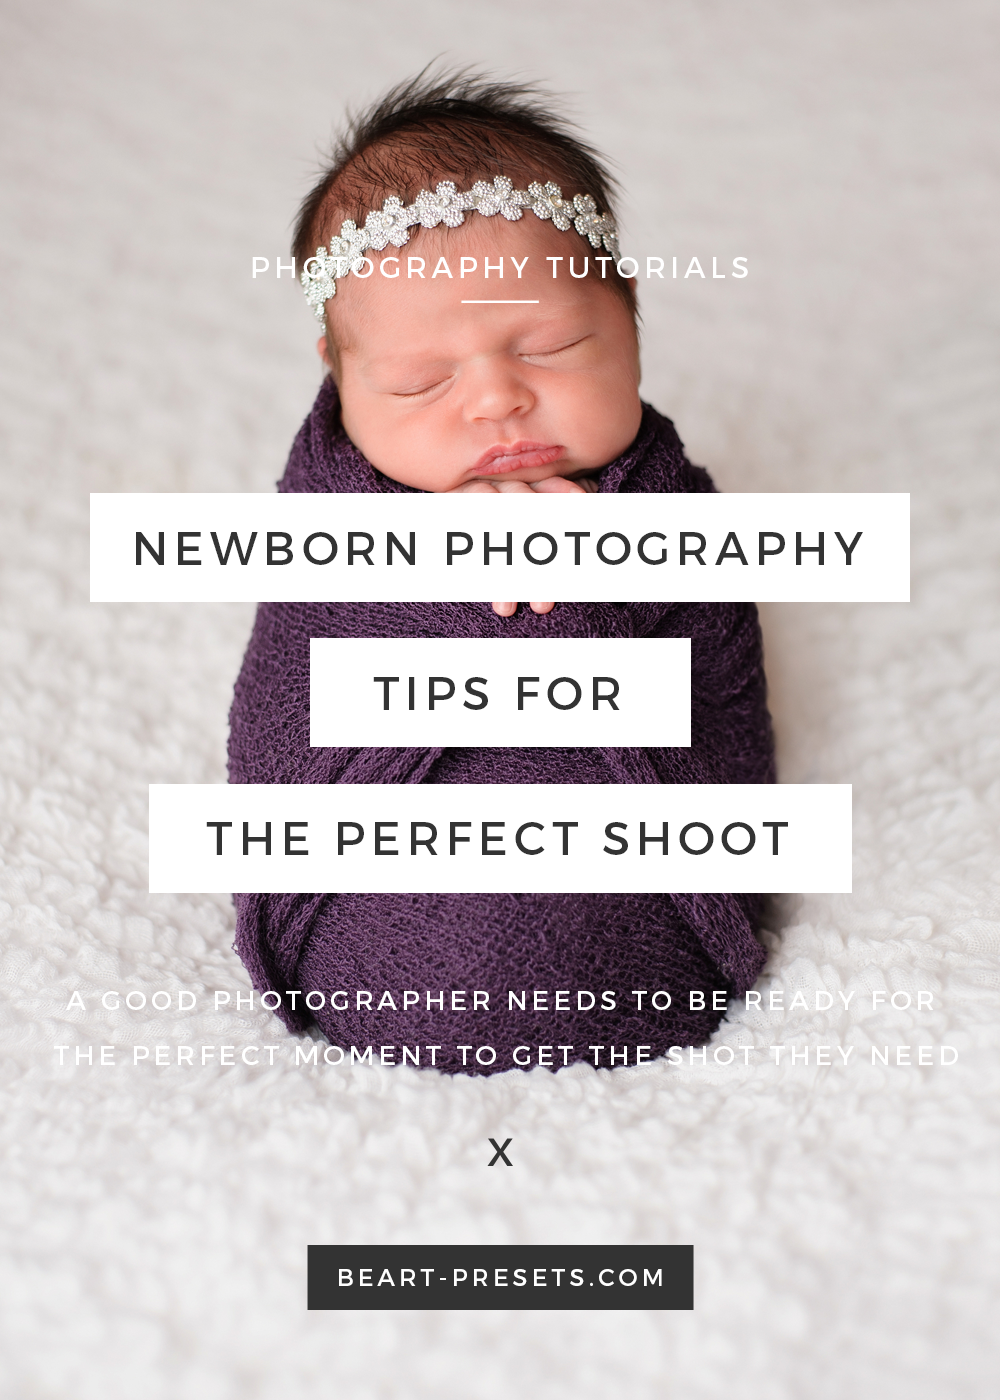 newborn photography tips by beart-presets